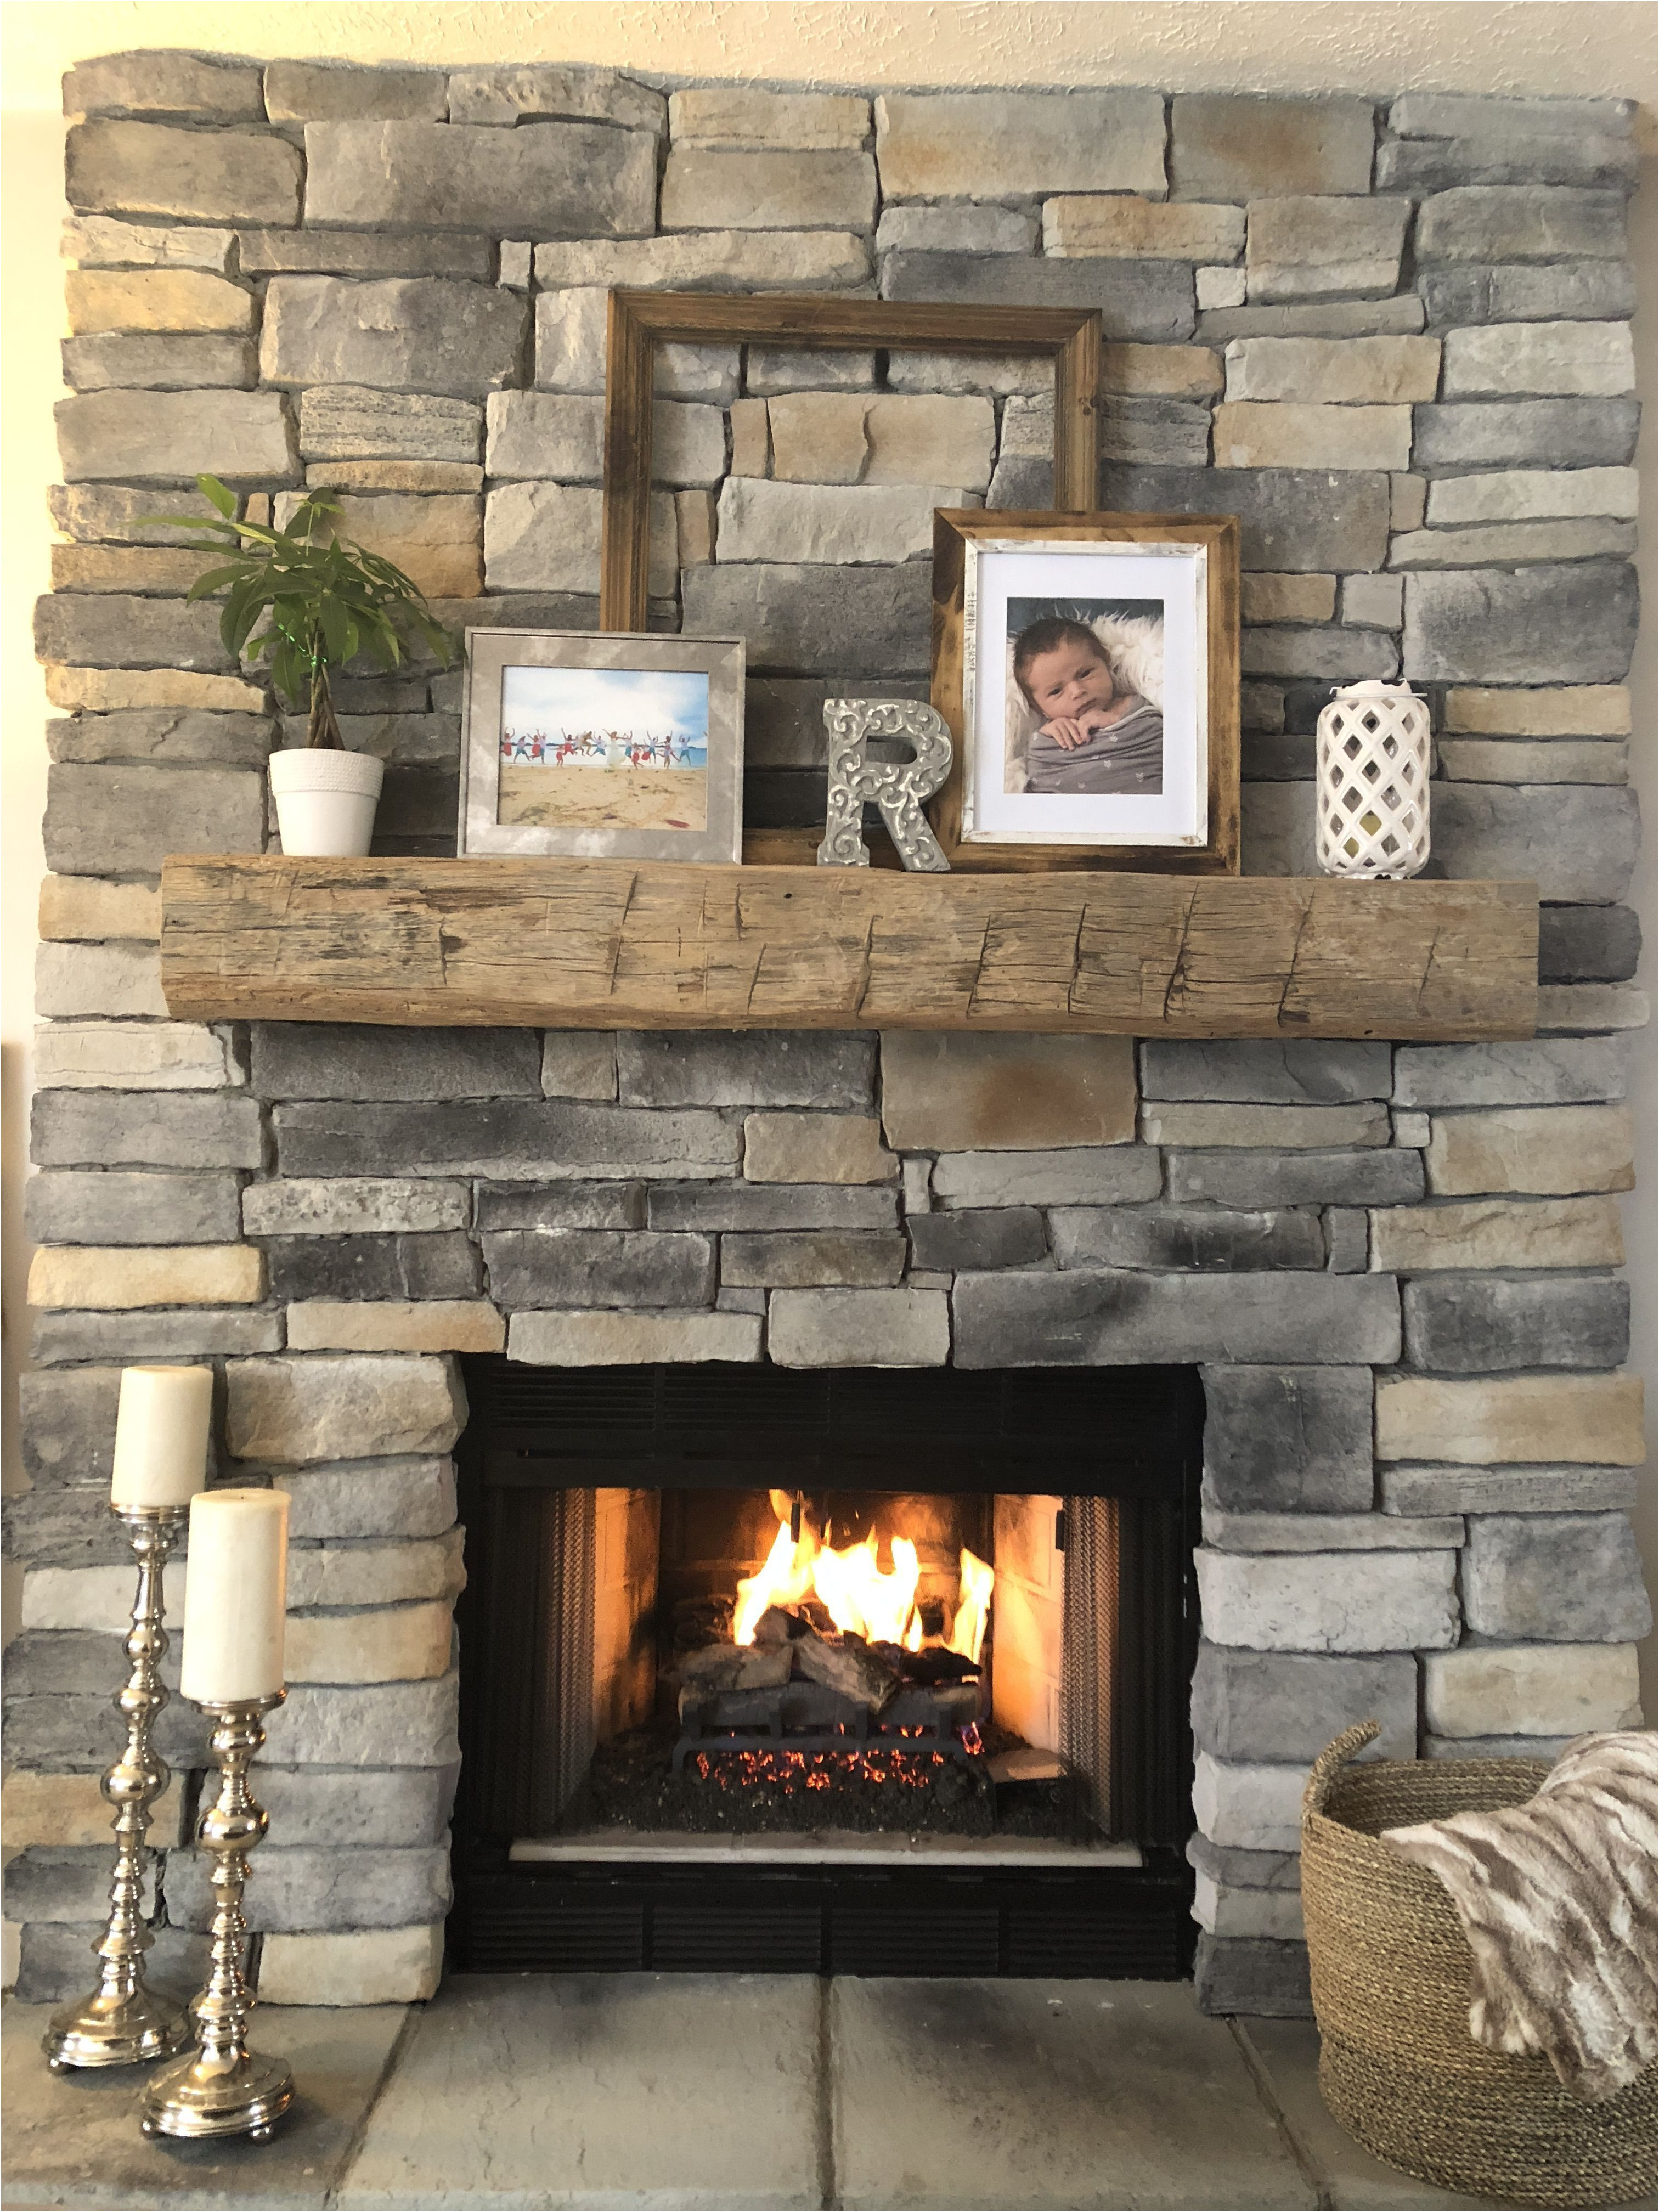 New Fireplace Remodel before and after